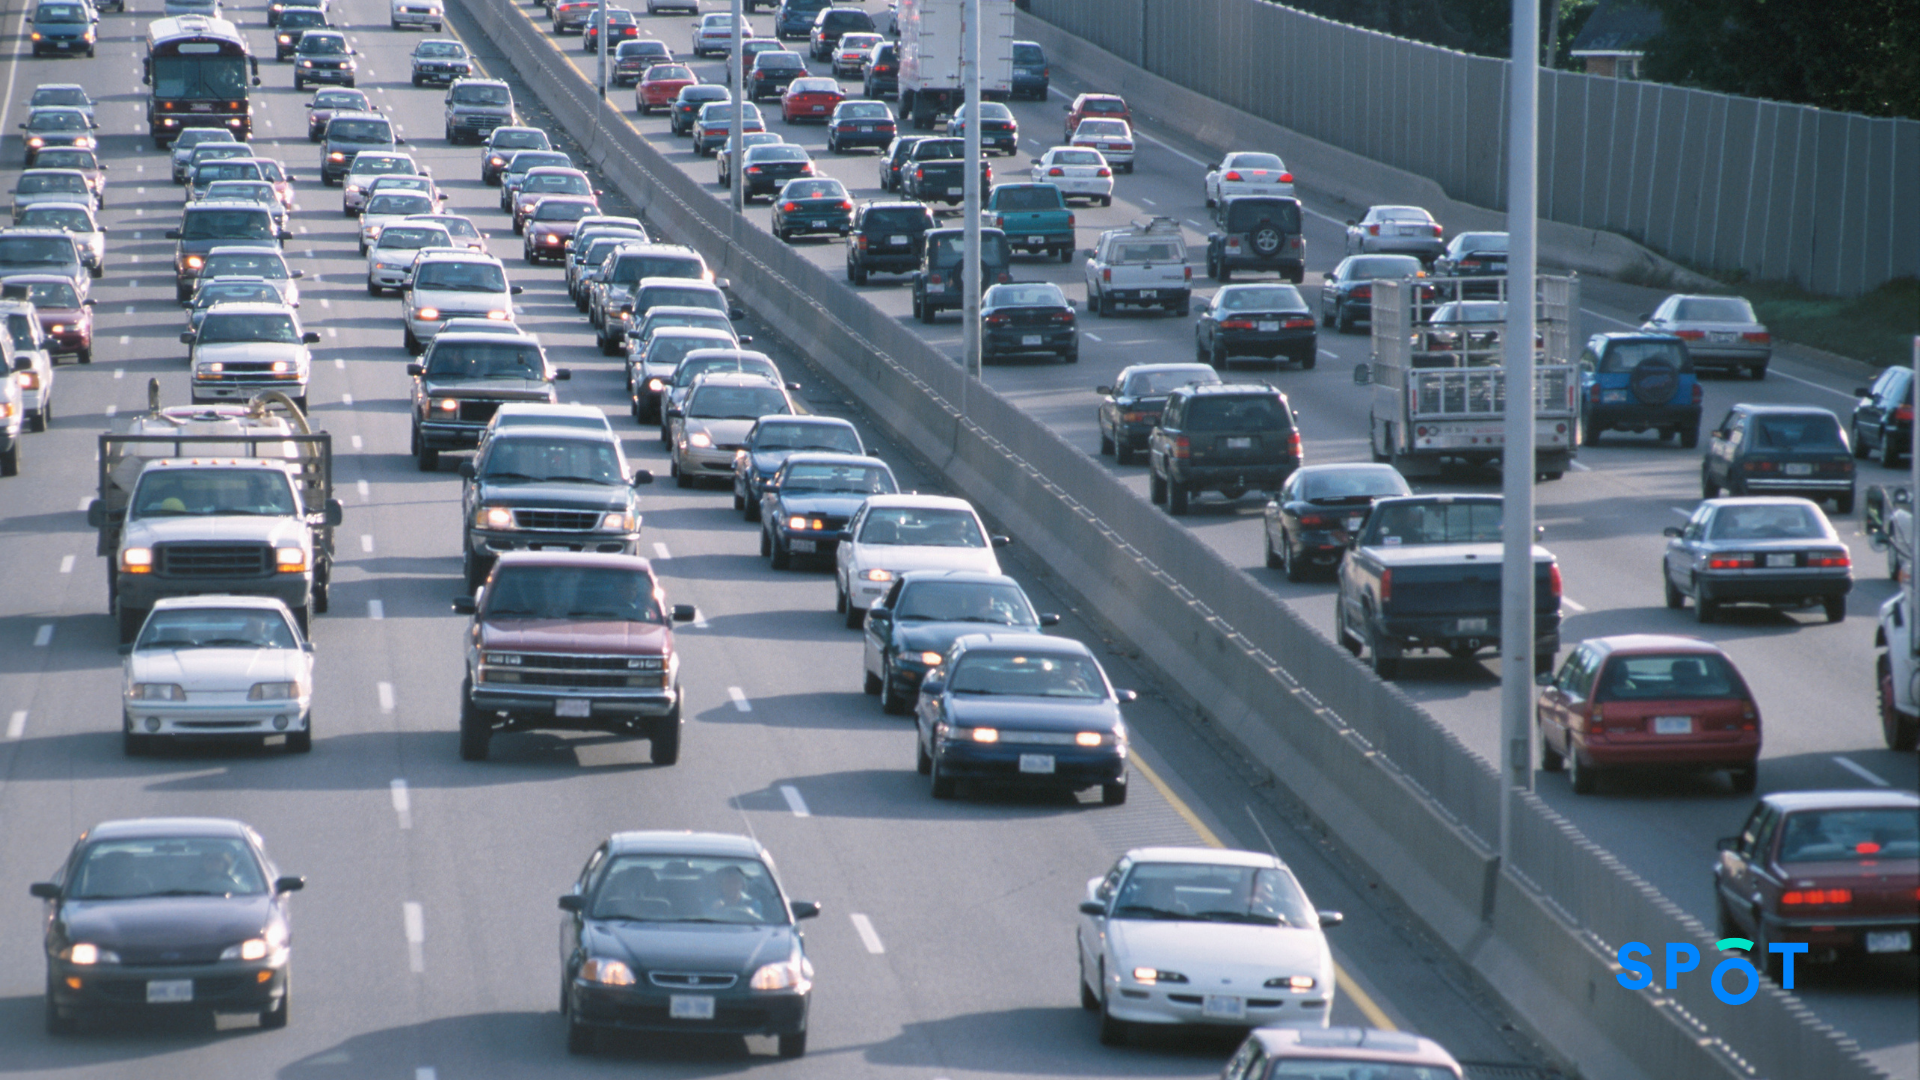 The transportation industry is the greater emitter of greenhouse gases